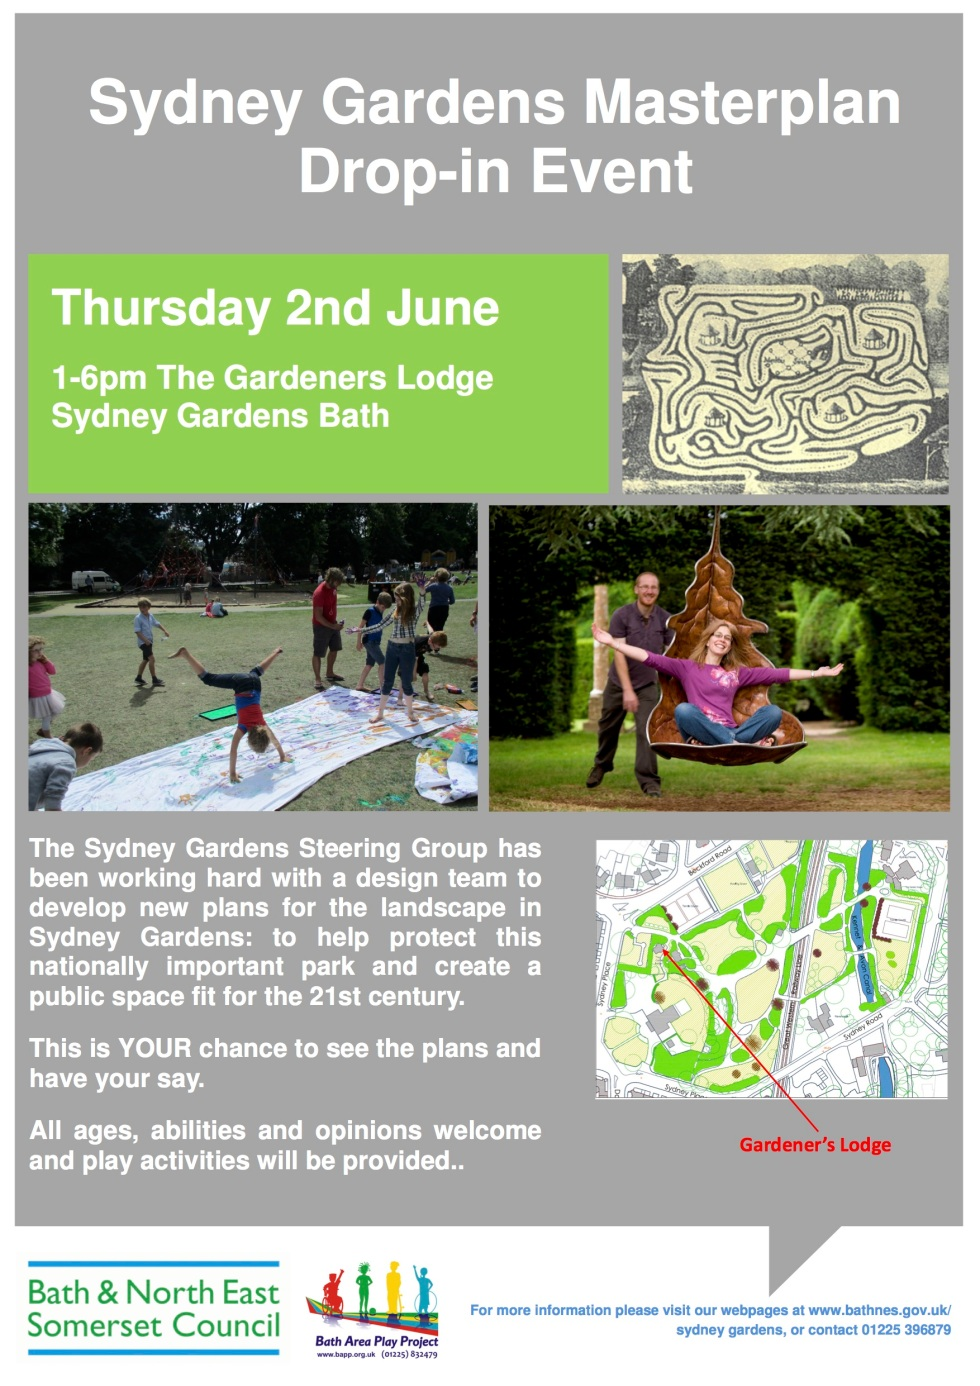 Sydney Gardens Masterplan consultation event 2nd June